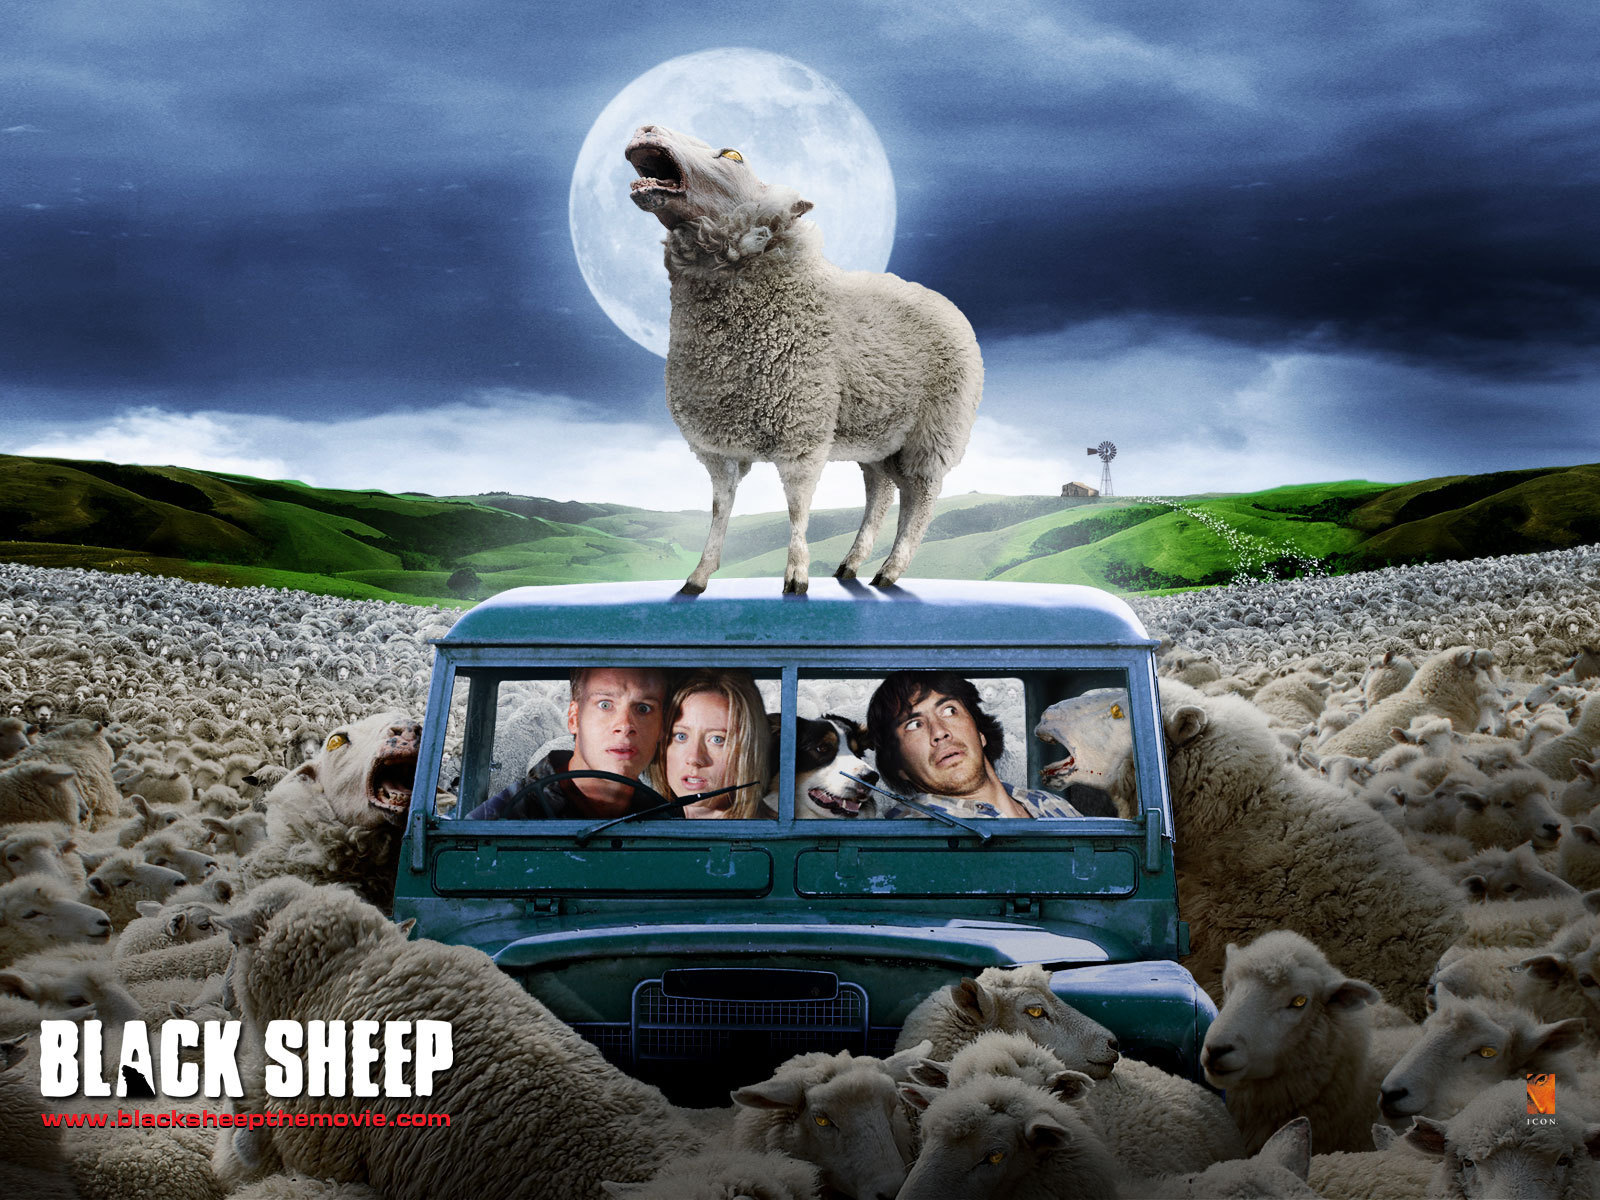 Horror Movies Images Black Sheep Hd Wallpaper And Background Photos